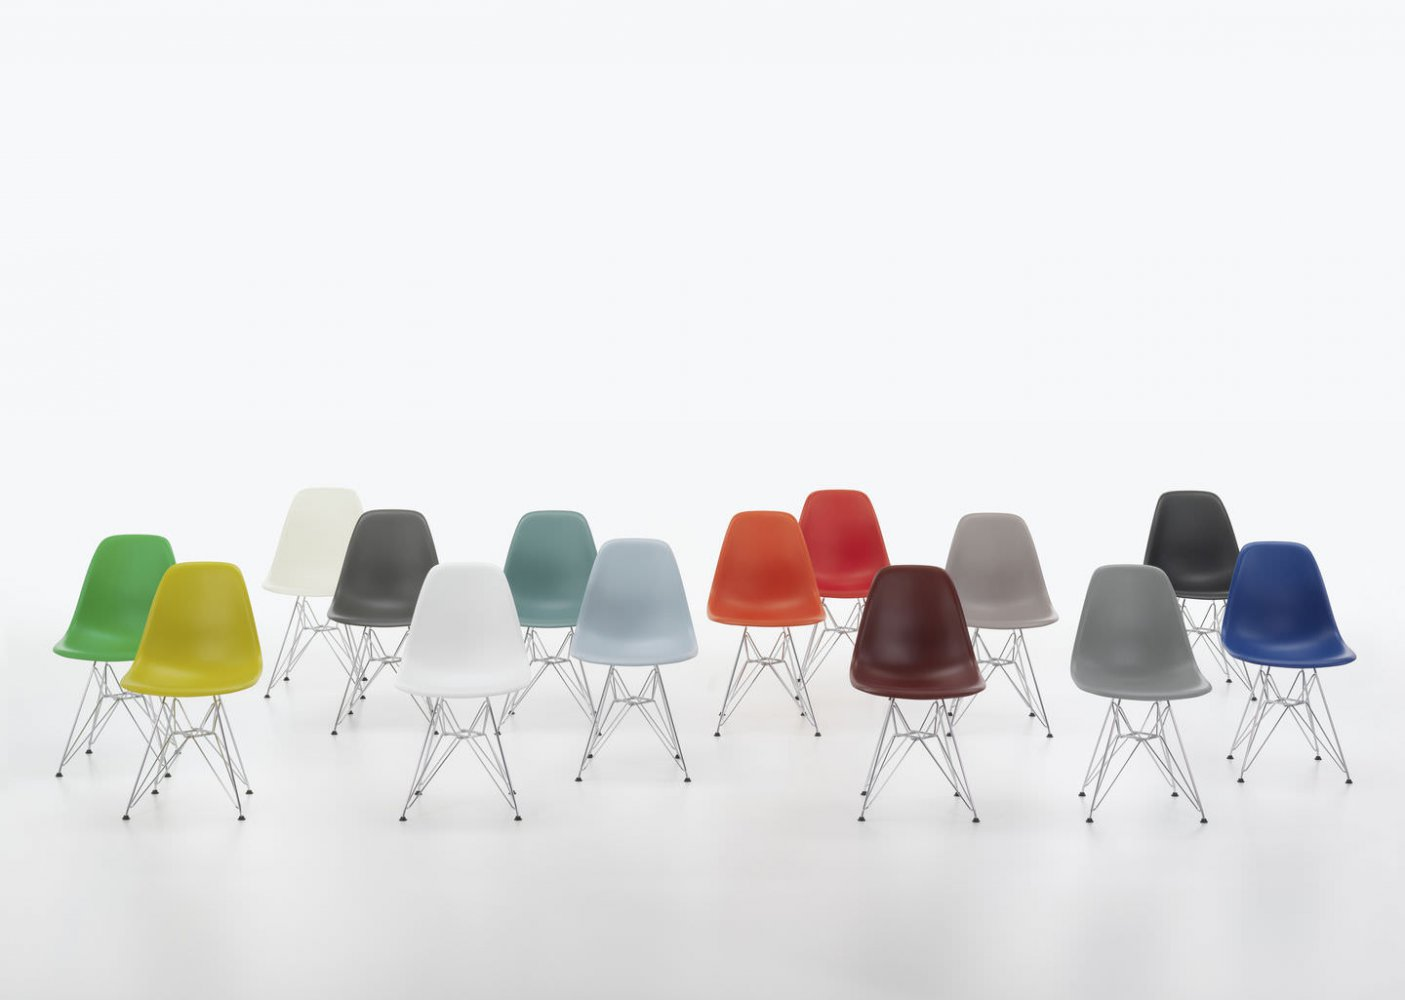 die eames plastic chairs mit angepasster sitzh he. Black Bedroom Furniture Sets. Home Design Ideas